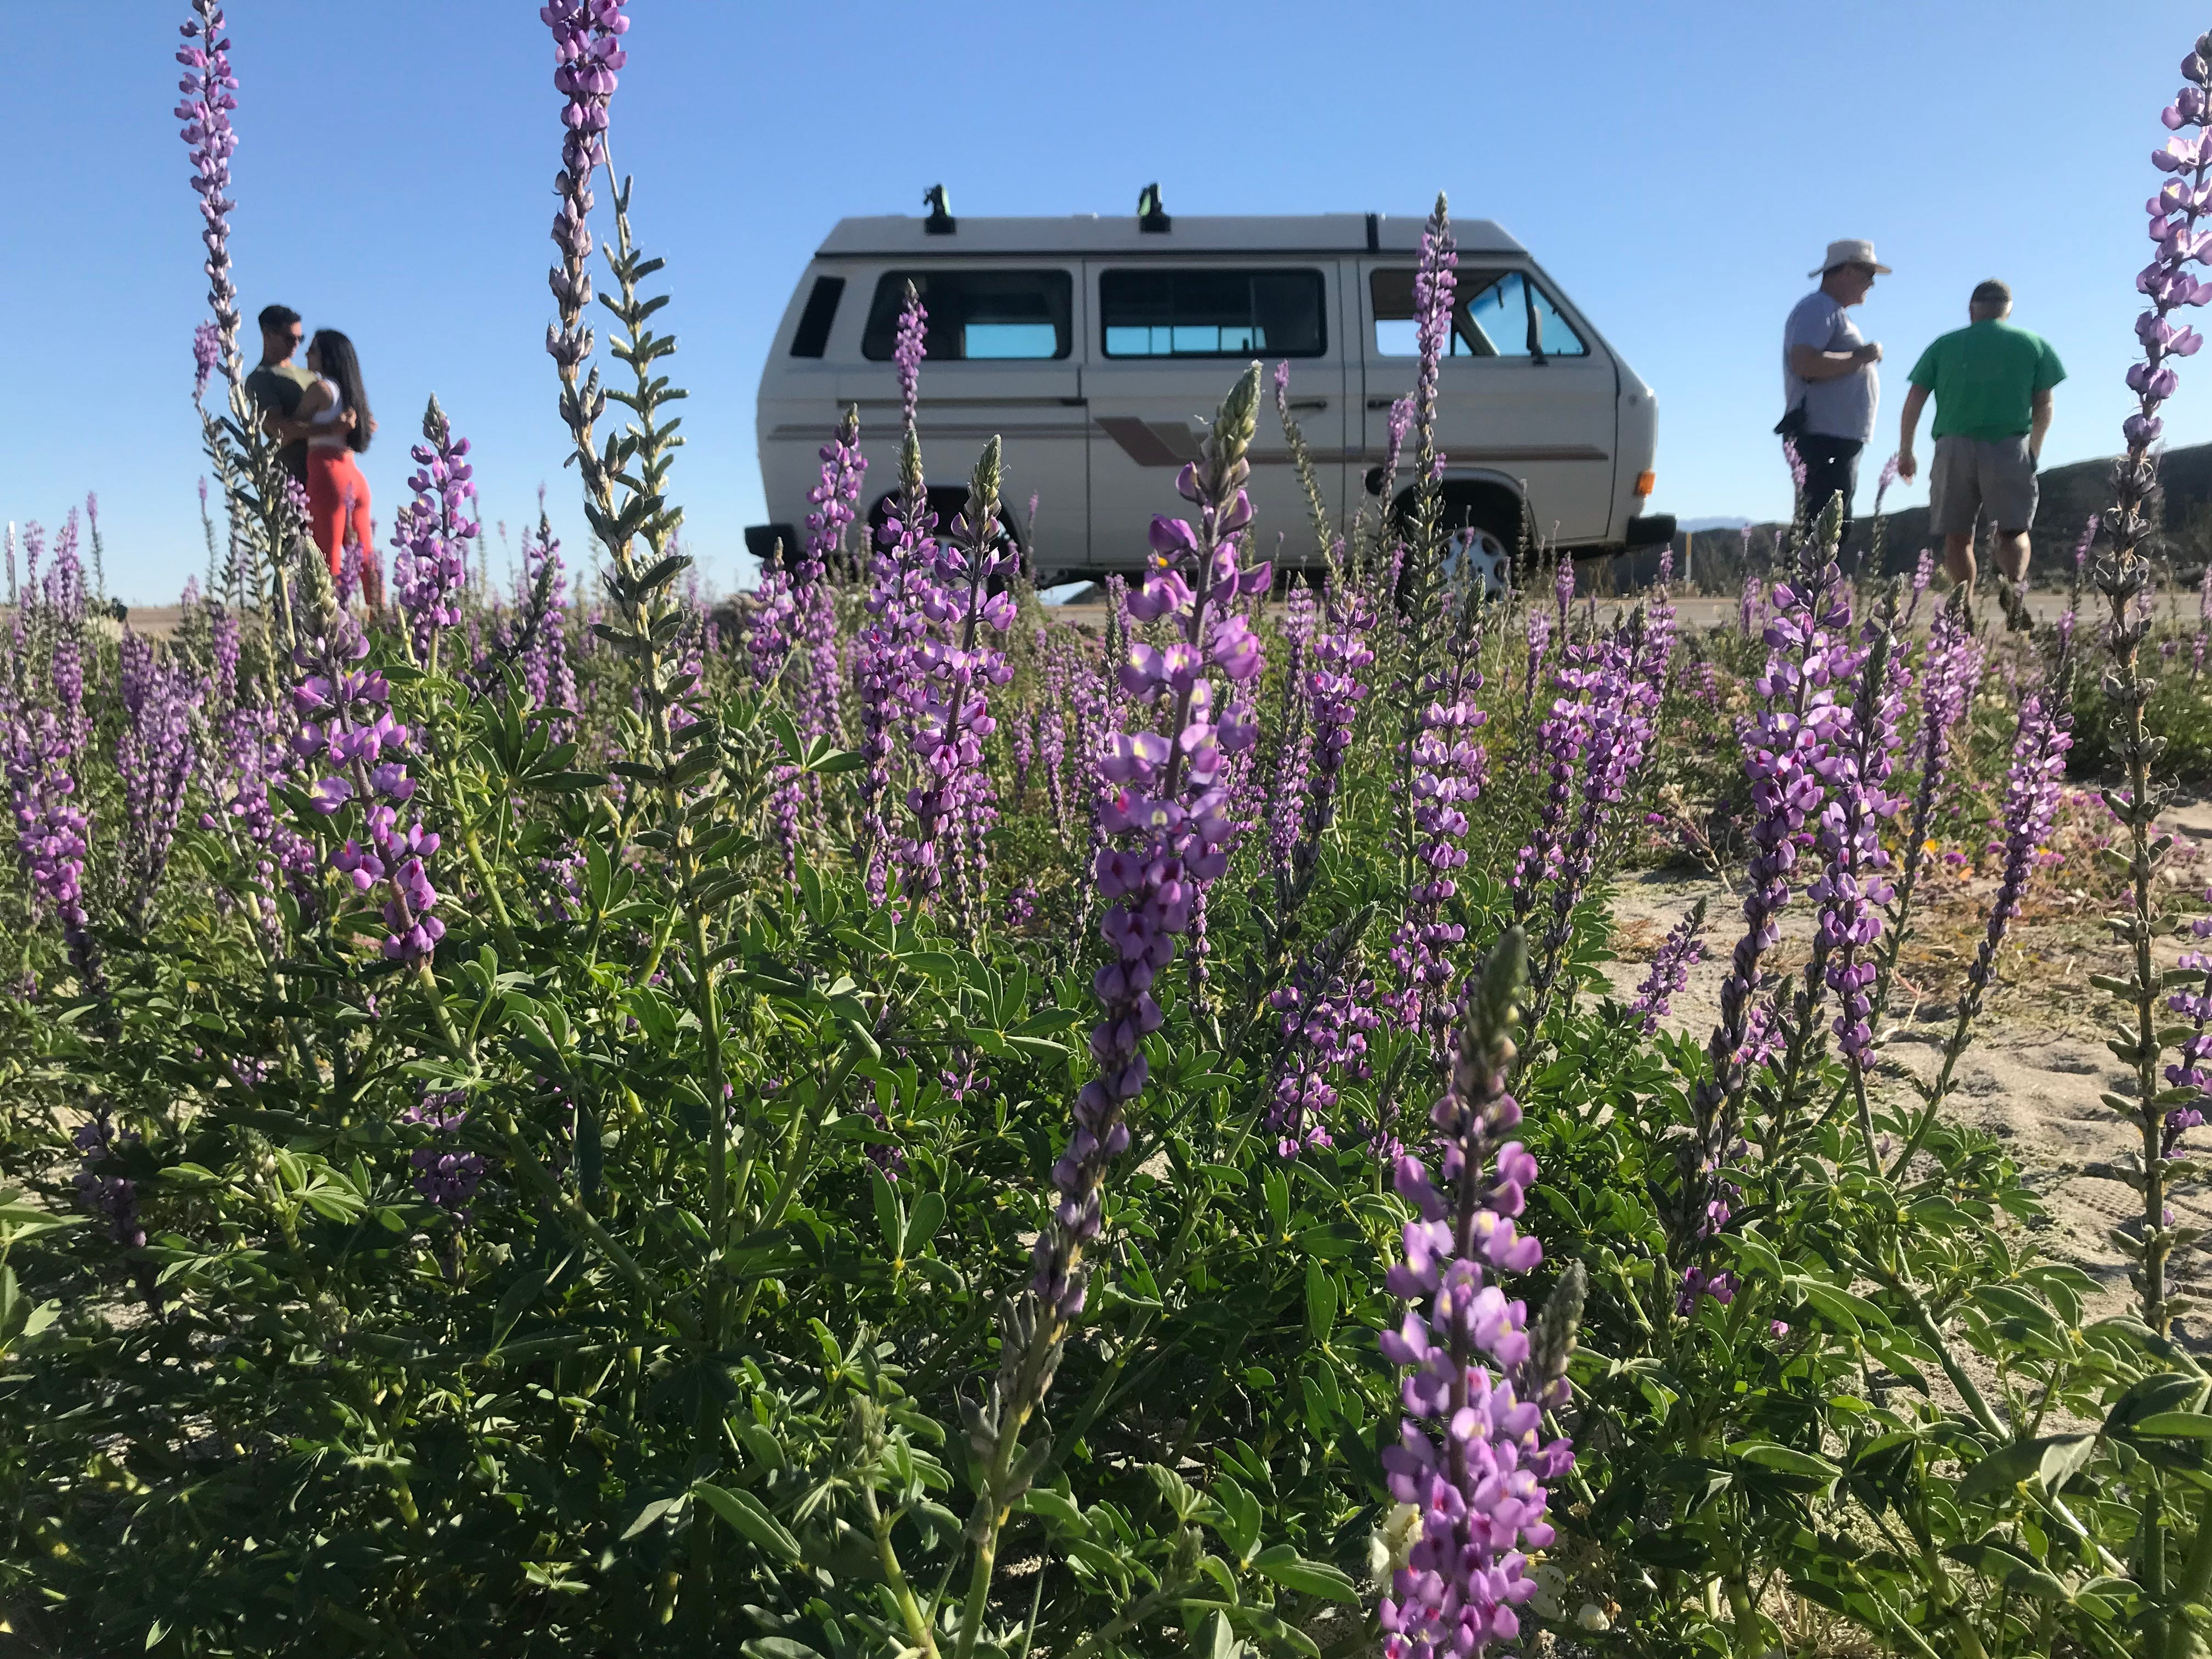 People stop along San Diego County Highway S-22, near mile marker 35, to take photos of the wildflowers on February 24, 2019.